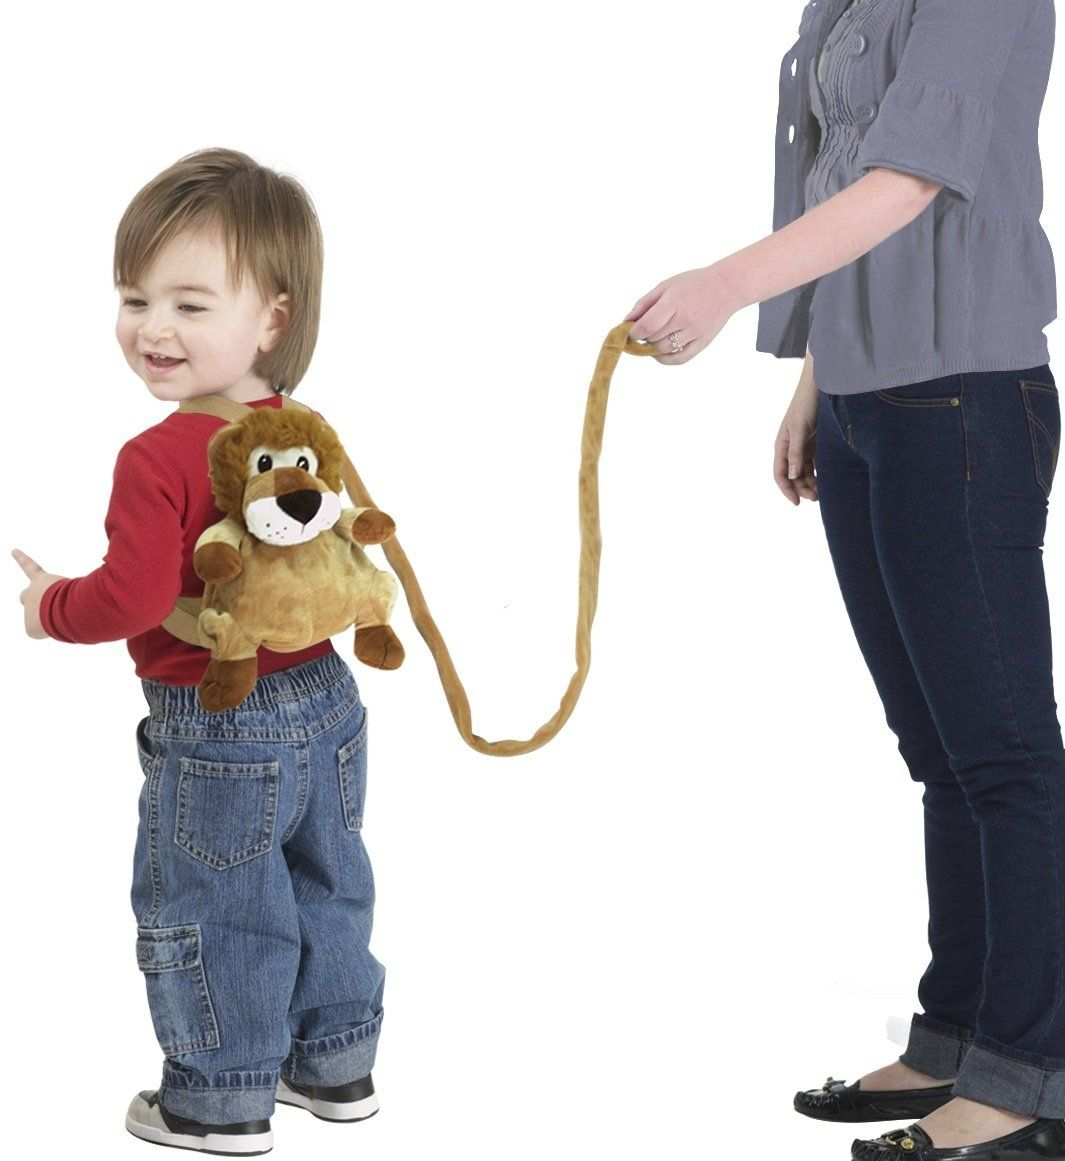 23af08a08ffc6d1eb5a6a6421593094f jeep 2 in 1 harness backpack, lion, brown, white, child leash, baby